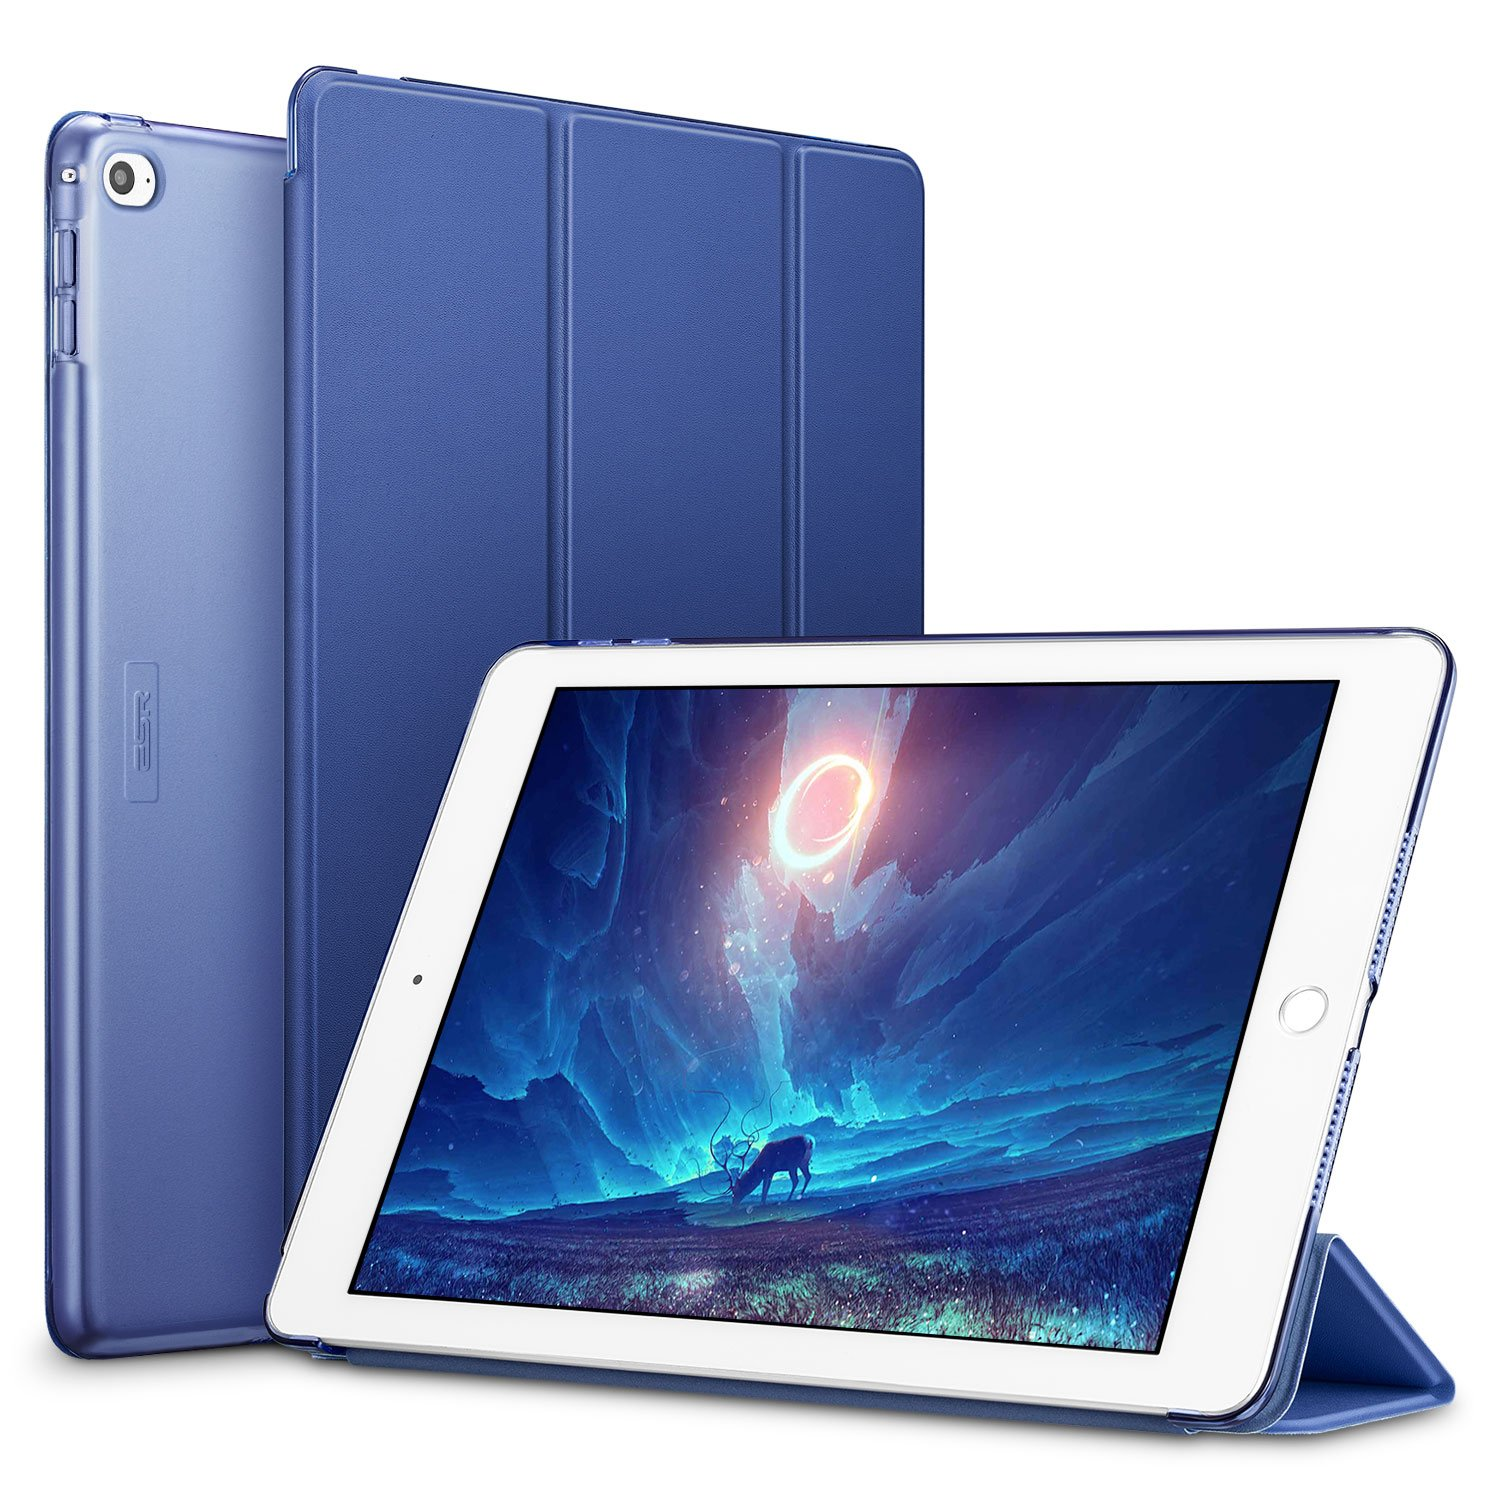 ESR Yippee Smart Case for The iPad Air 2, Smart Case Cover [Synthetic Leather] Translucent Frosted Back Magnetic Cover with Auto Sleep/Wake Function [Light Weight] (Navy Blue)